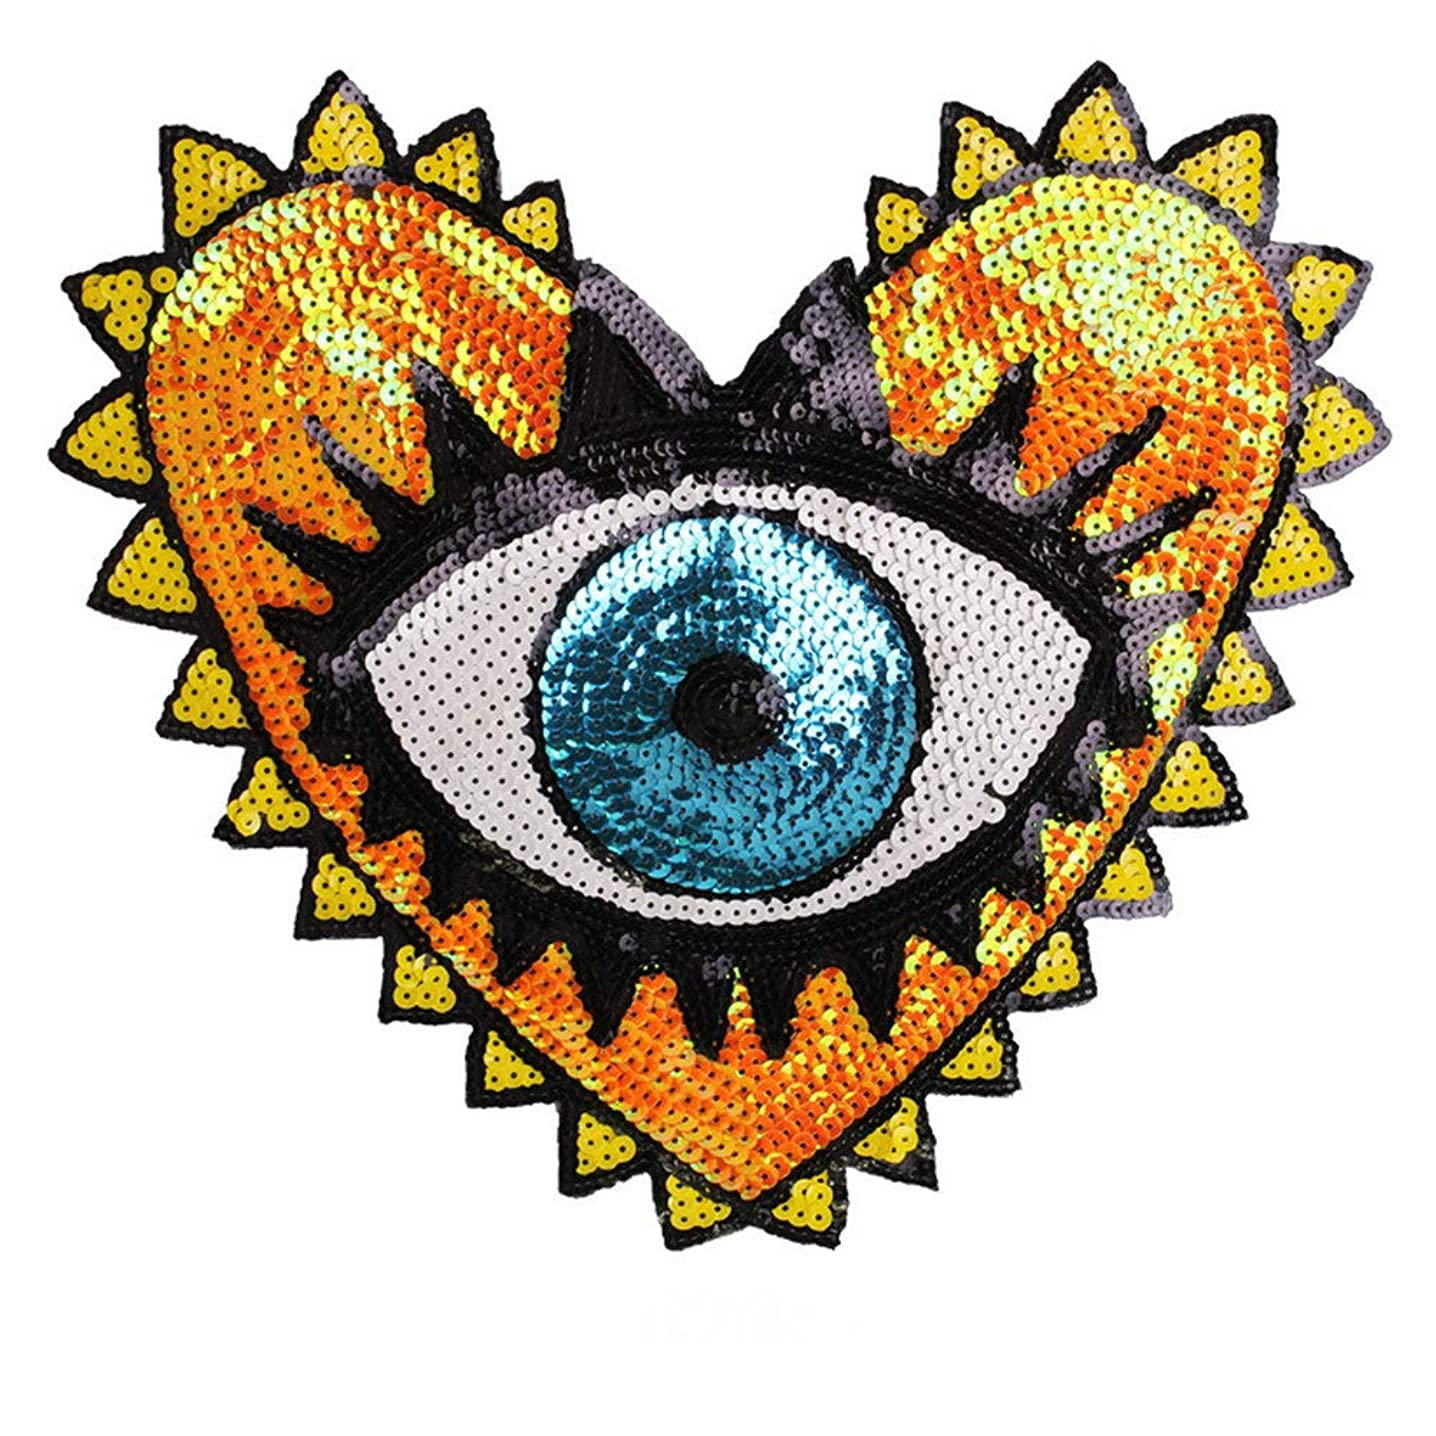 Sequin Patch Fashion Coat Patch Heart-Shaped Eye Sequins Embroidery Clothing Accessories Applique DIY Embroidery Flower Patches Jacket Badge (Style B)